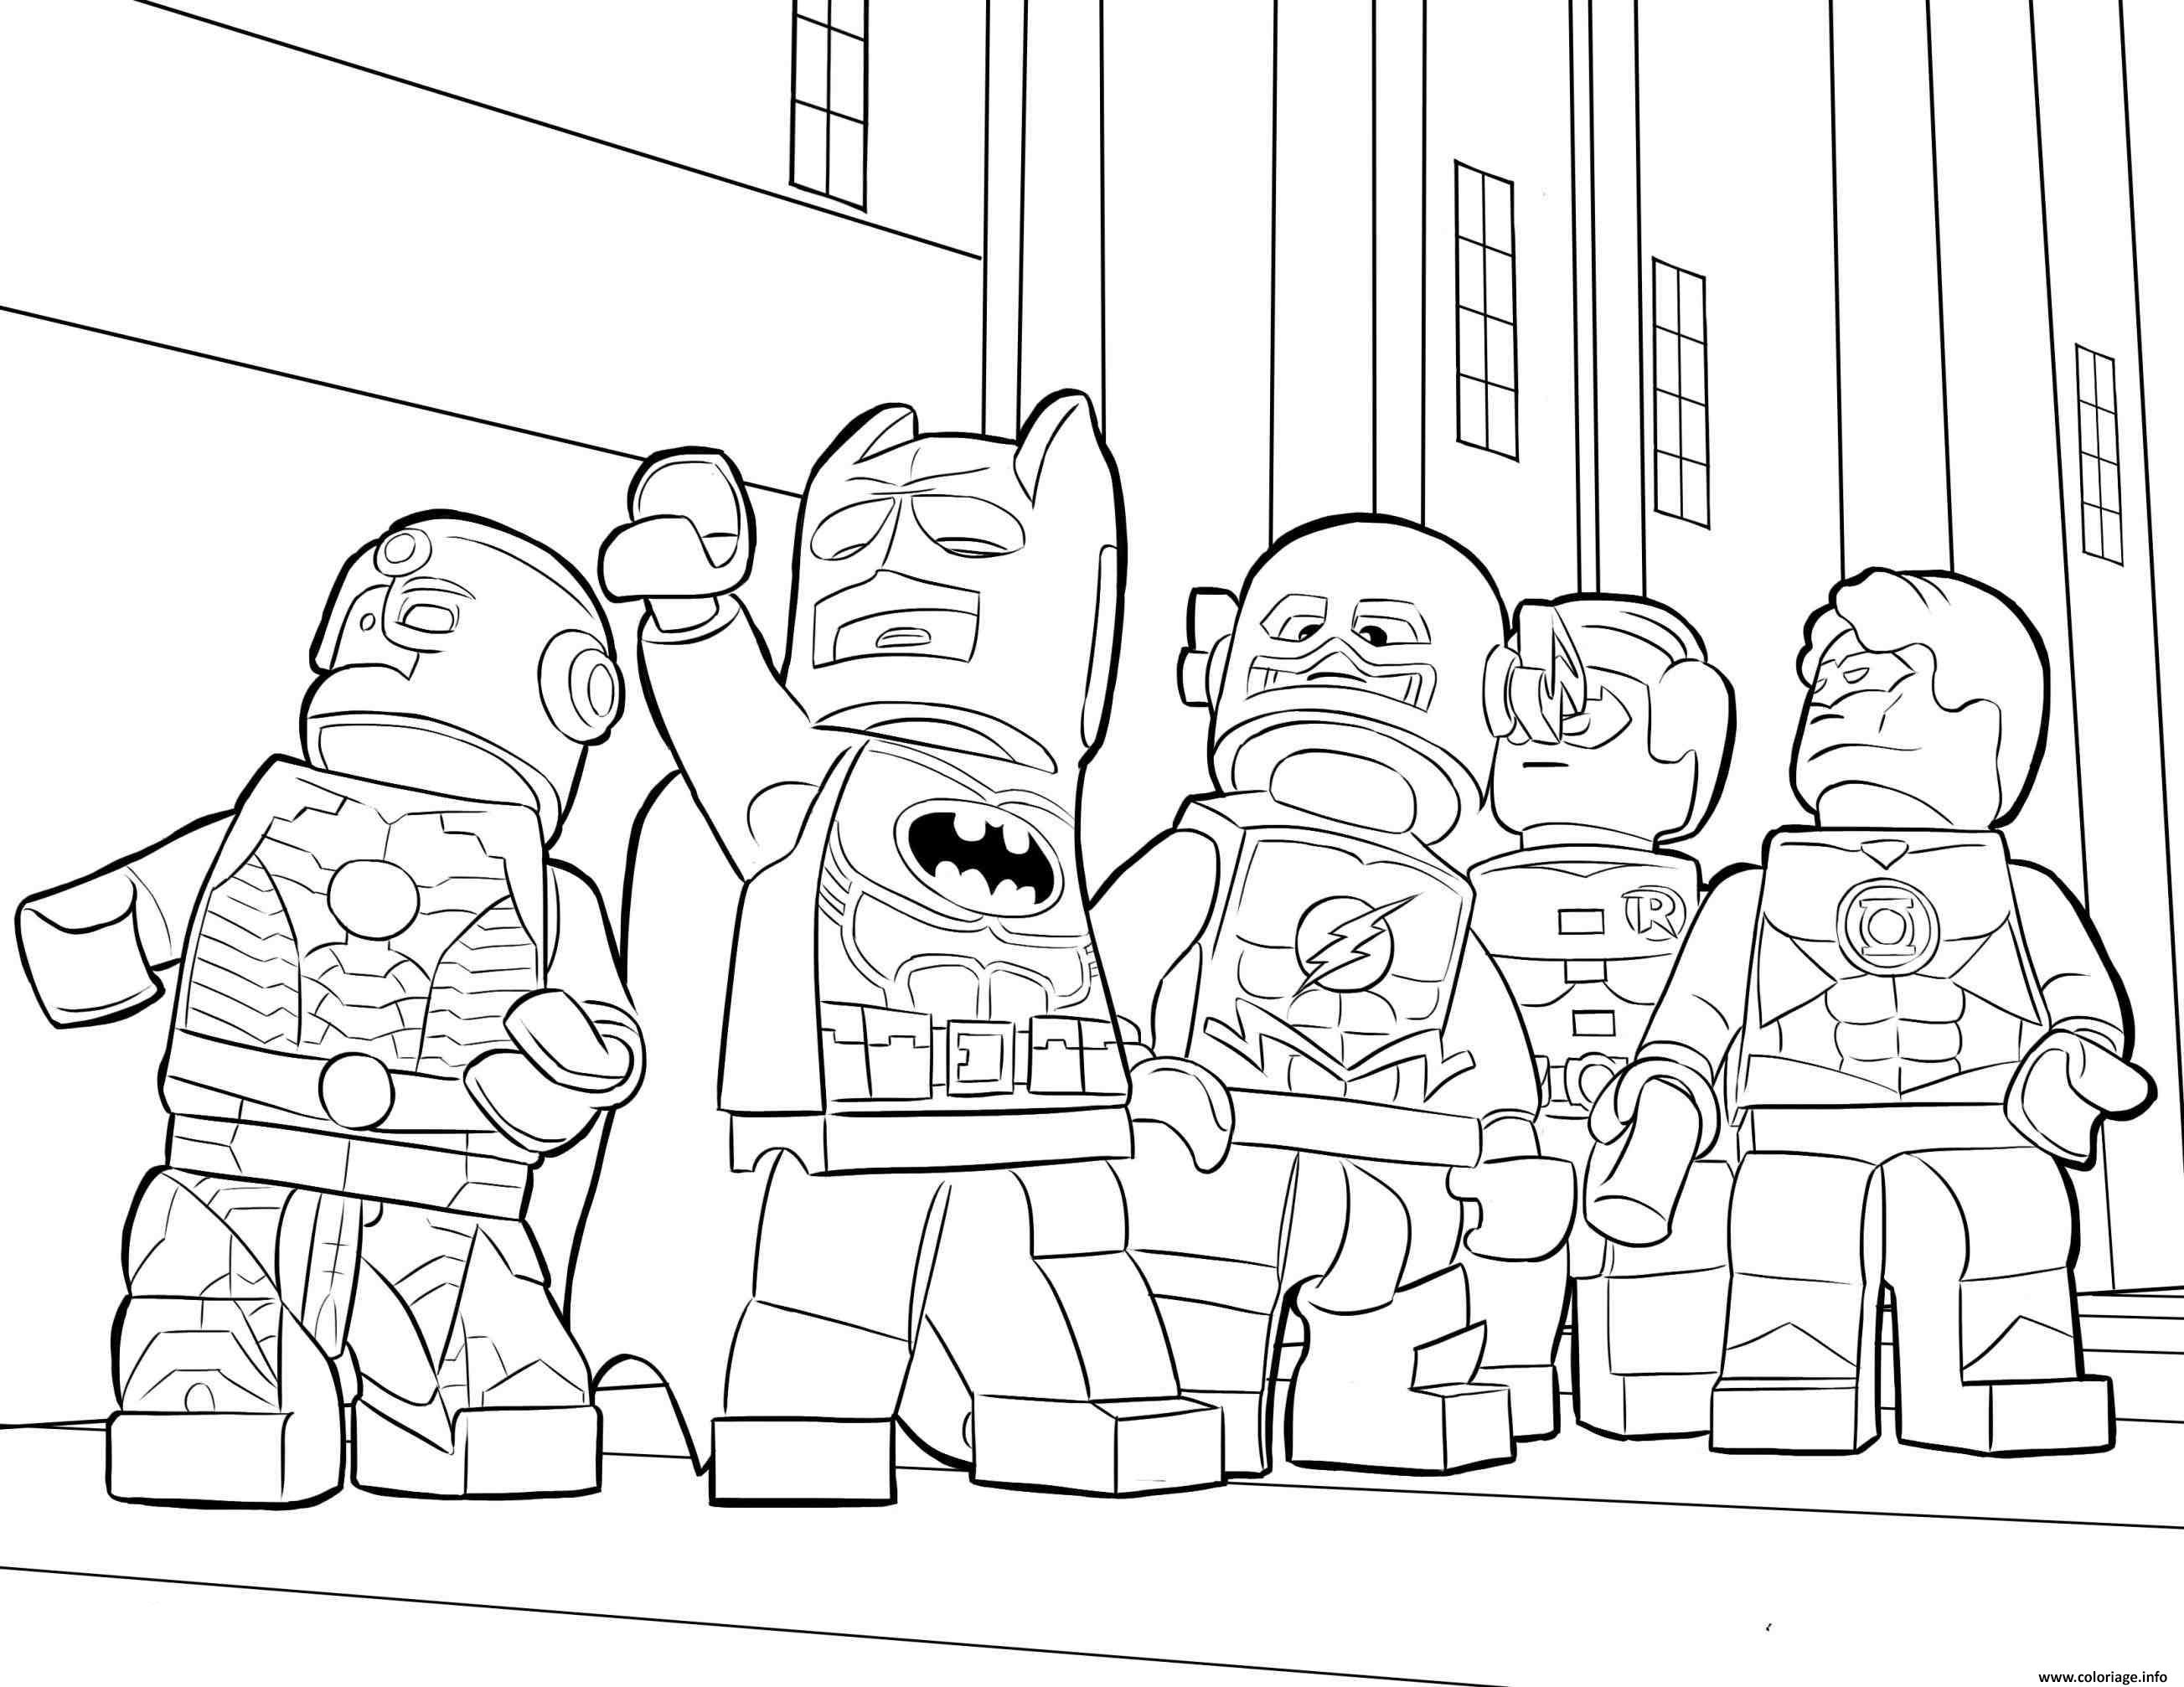 Coloriage flash lego et super heros batman ironman dessin - Coloriage heros ...